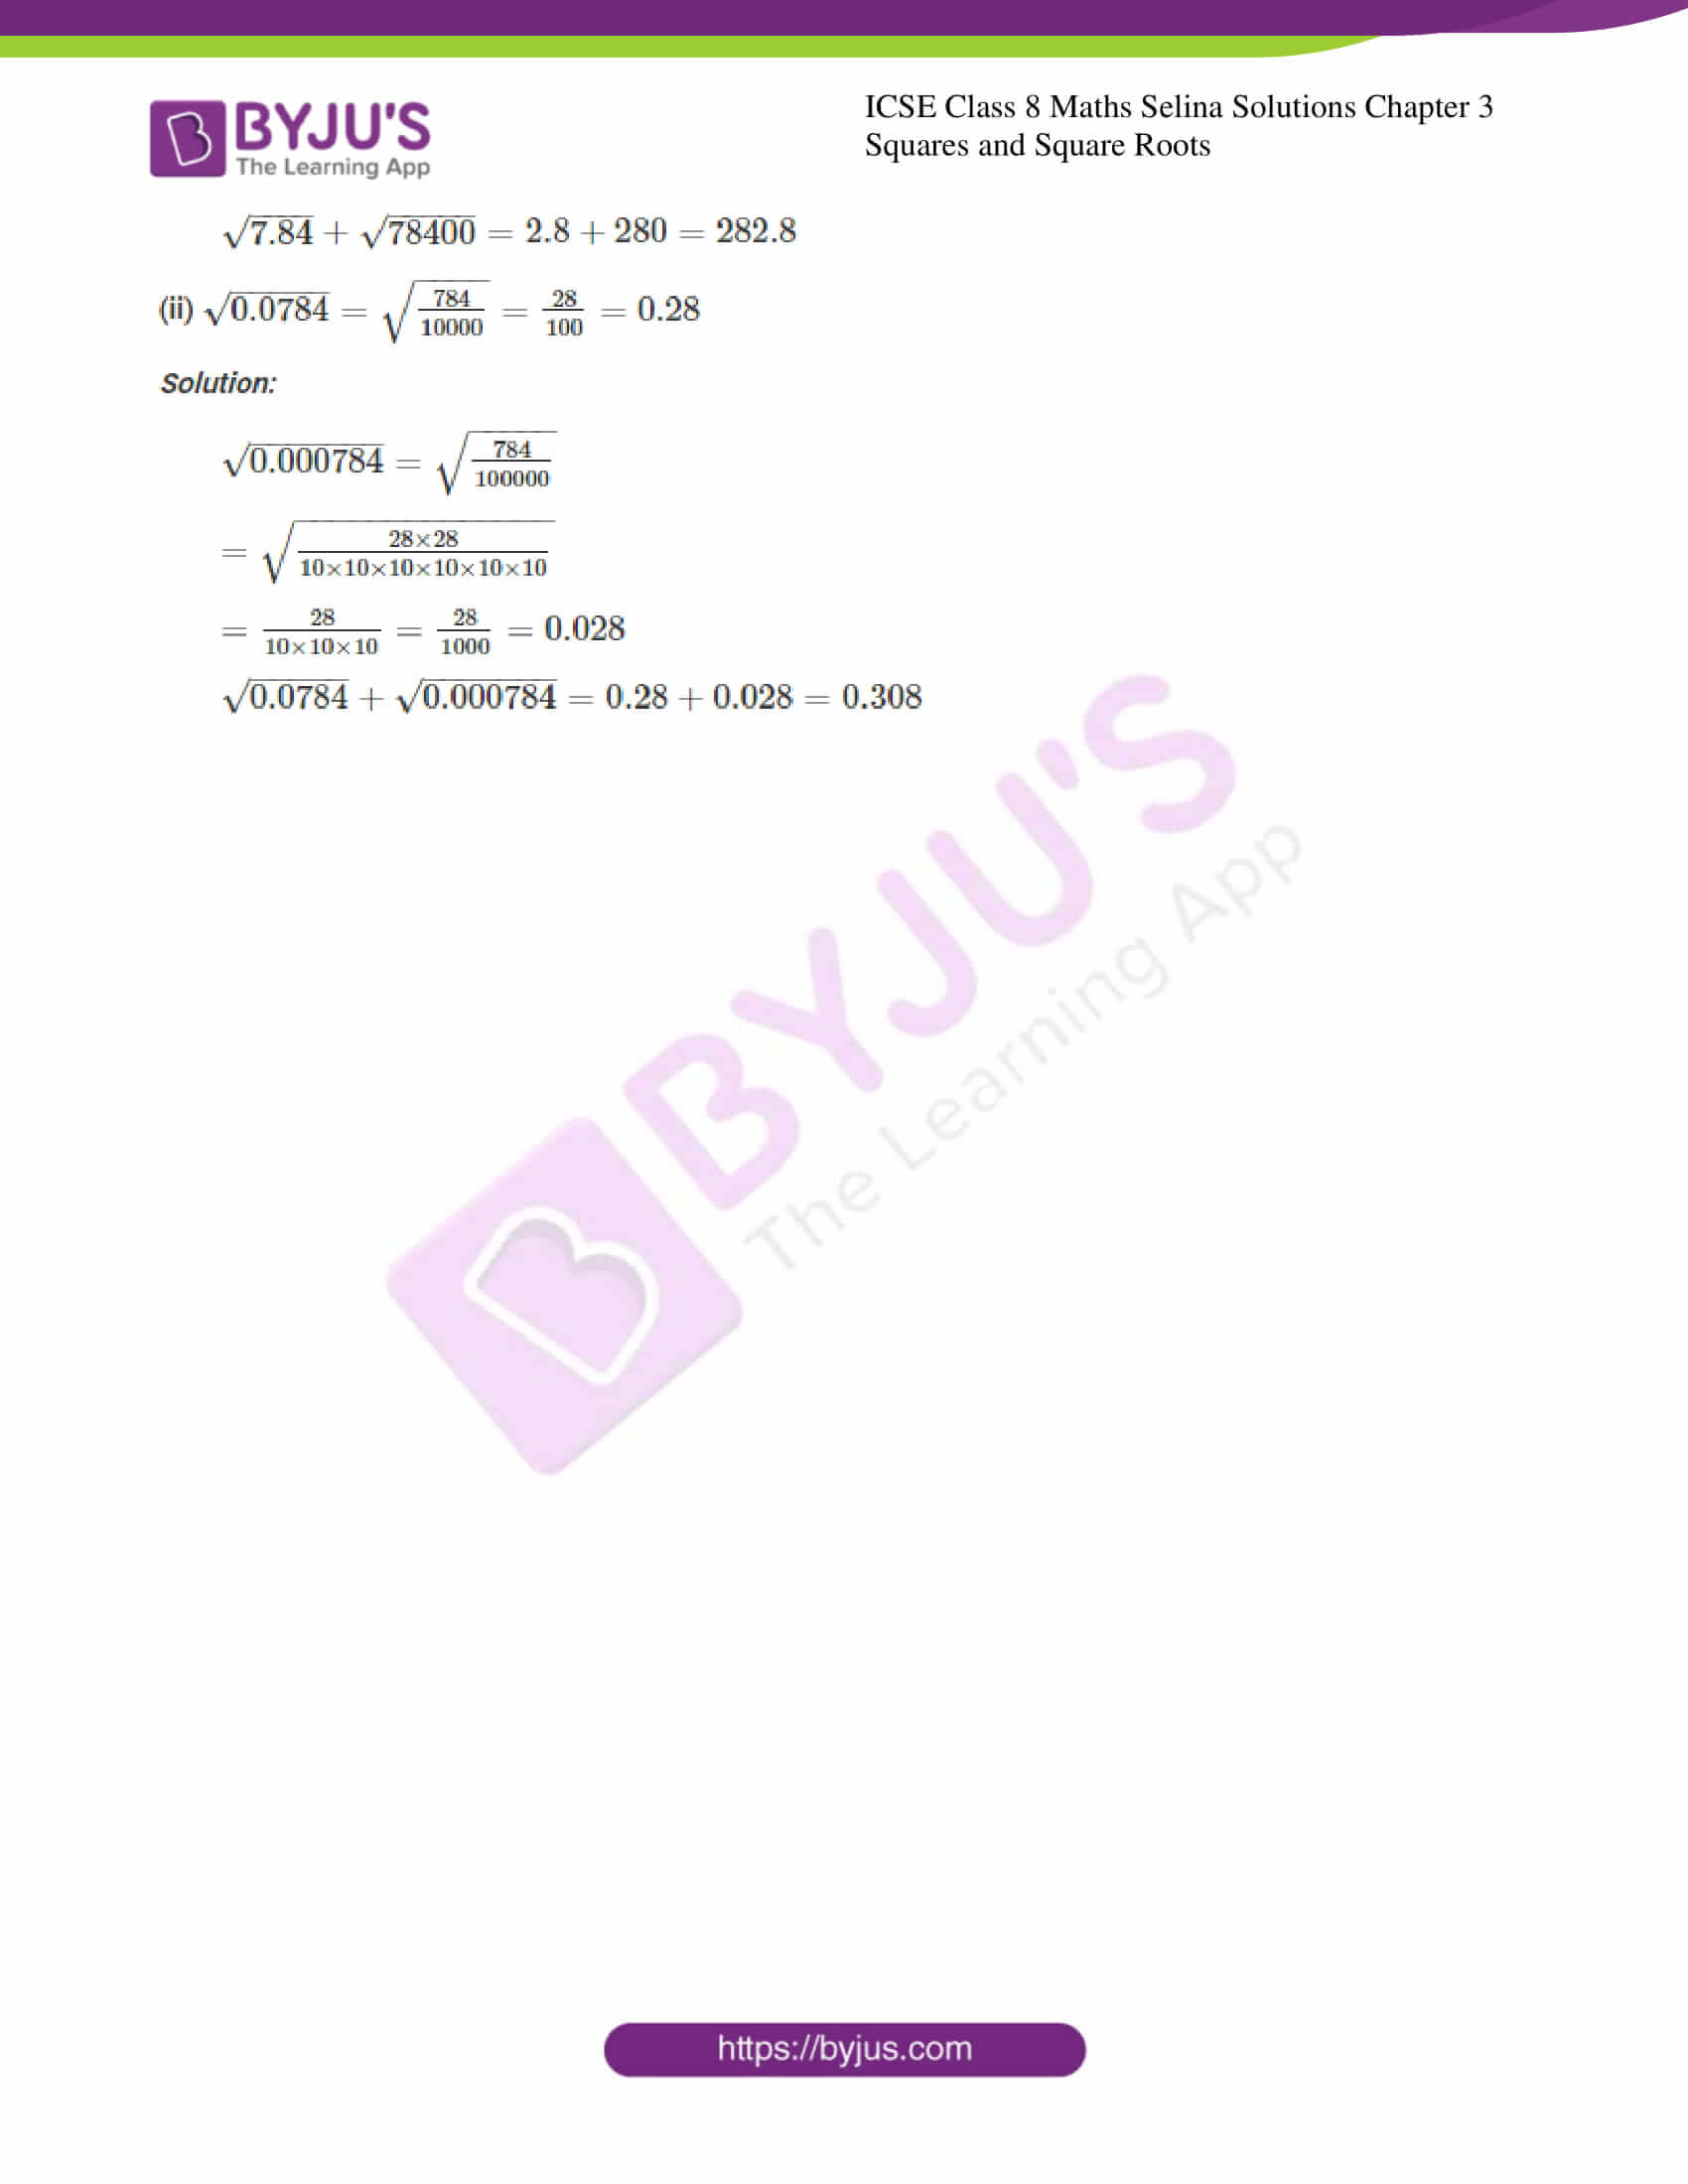 icse april7 class 8 maths selina solutions chapter 3 squares and square roots 08